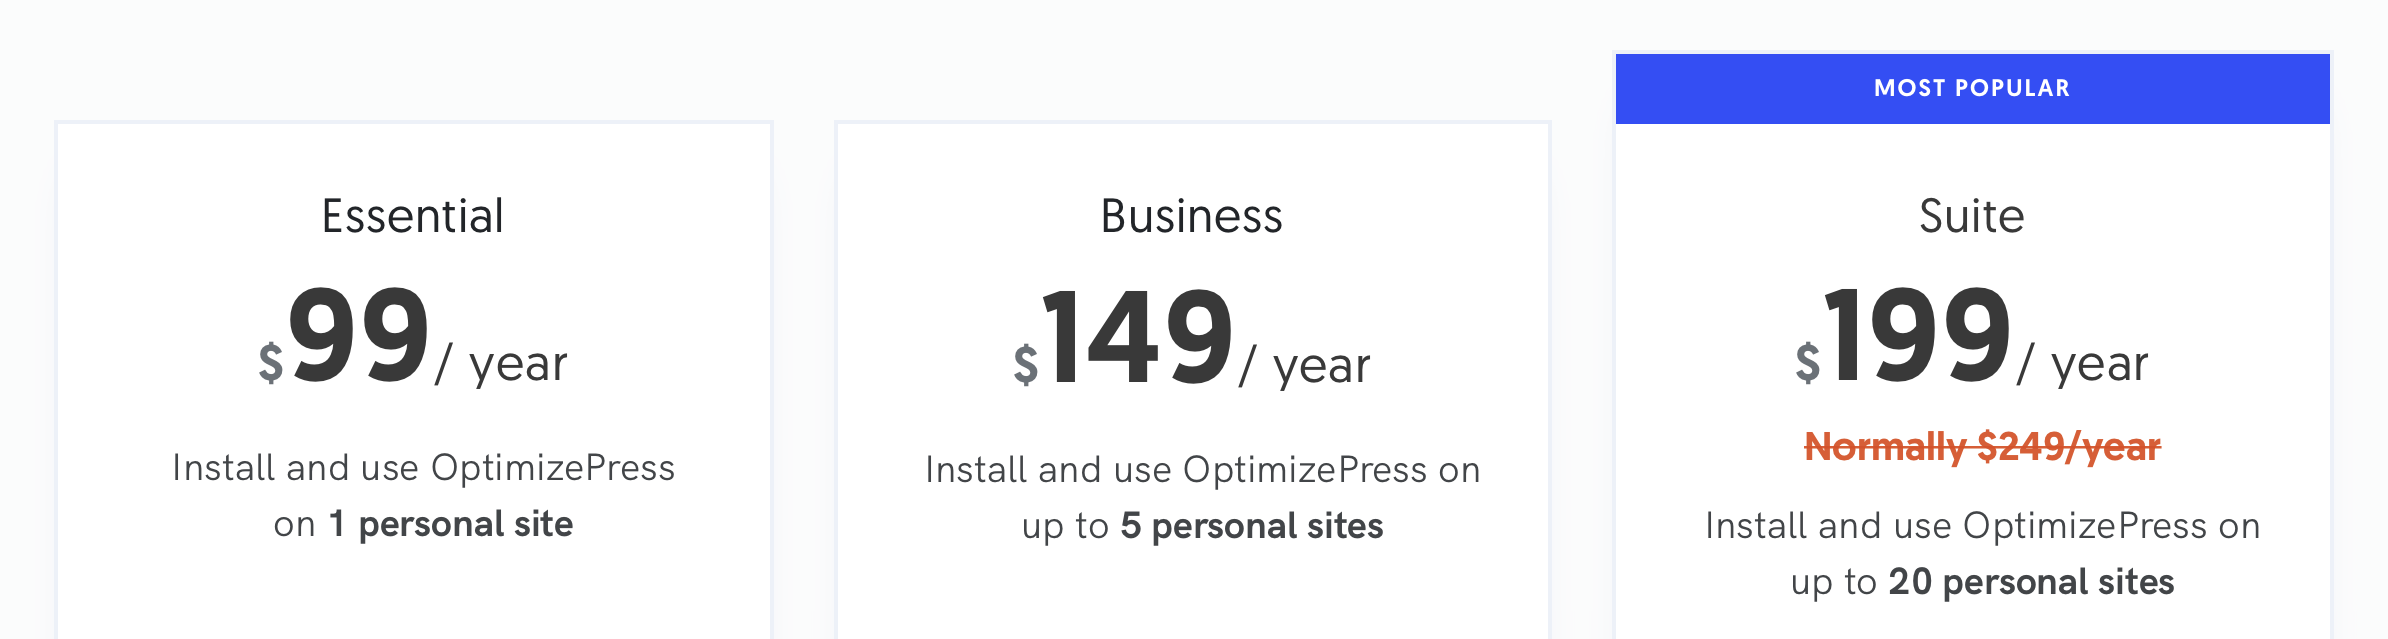 Optimizepress pricing 2021